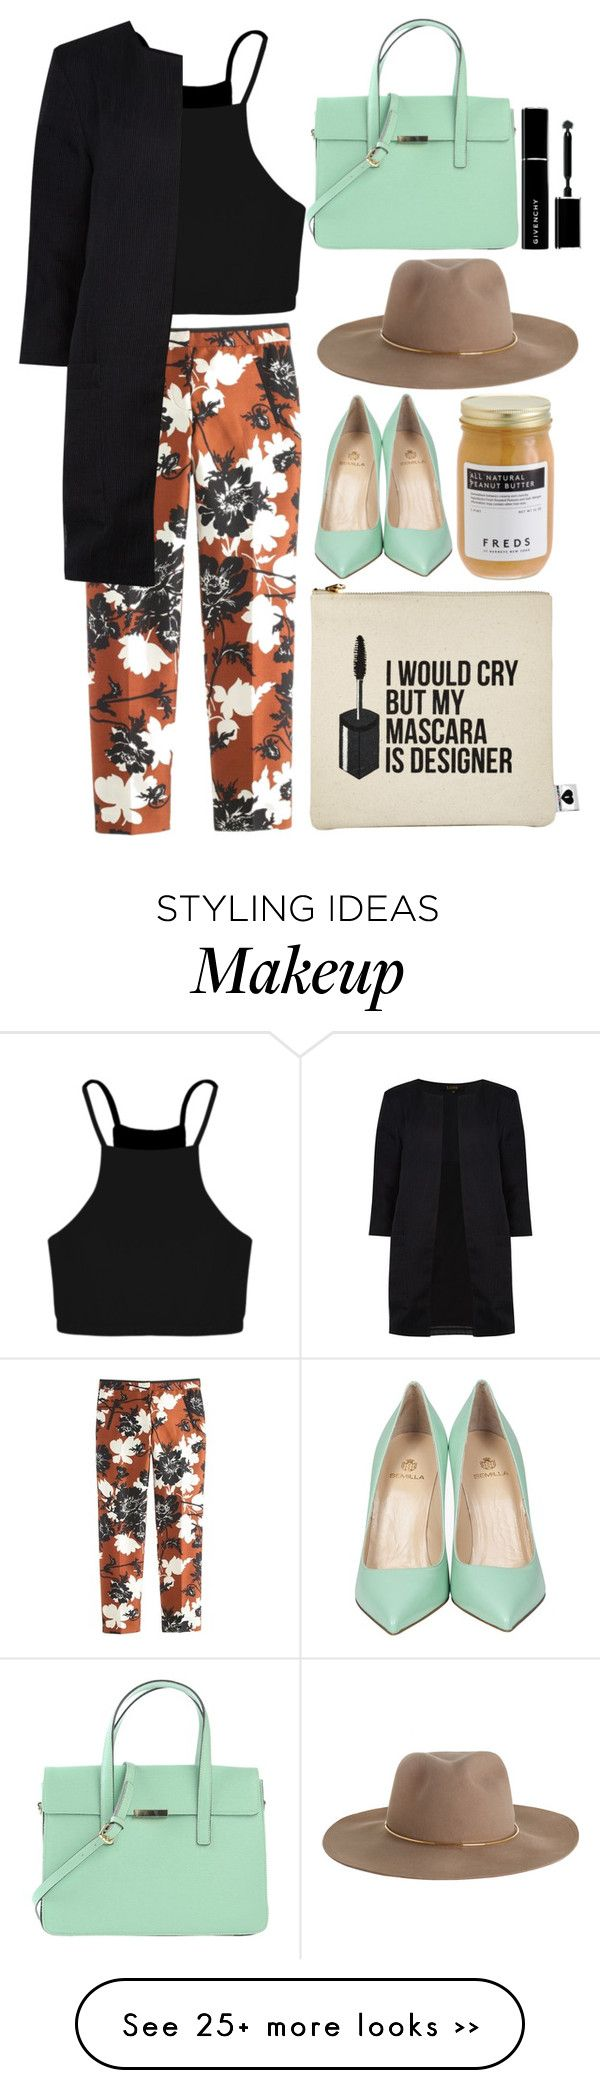 """I put a spell on you because you're mine"" by eclectic-chic on Polyvore featuring Boohoo, Semilla, Sephora Collection, Zimmermann, J.Crew, Dorothy Perkins, FREDS at Barneys New York, Givenchy and dusterjacket"